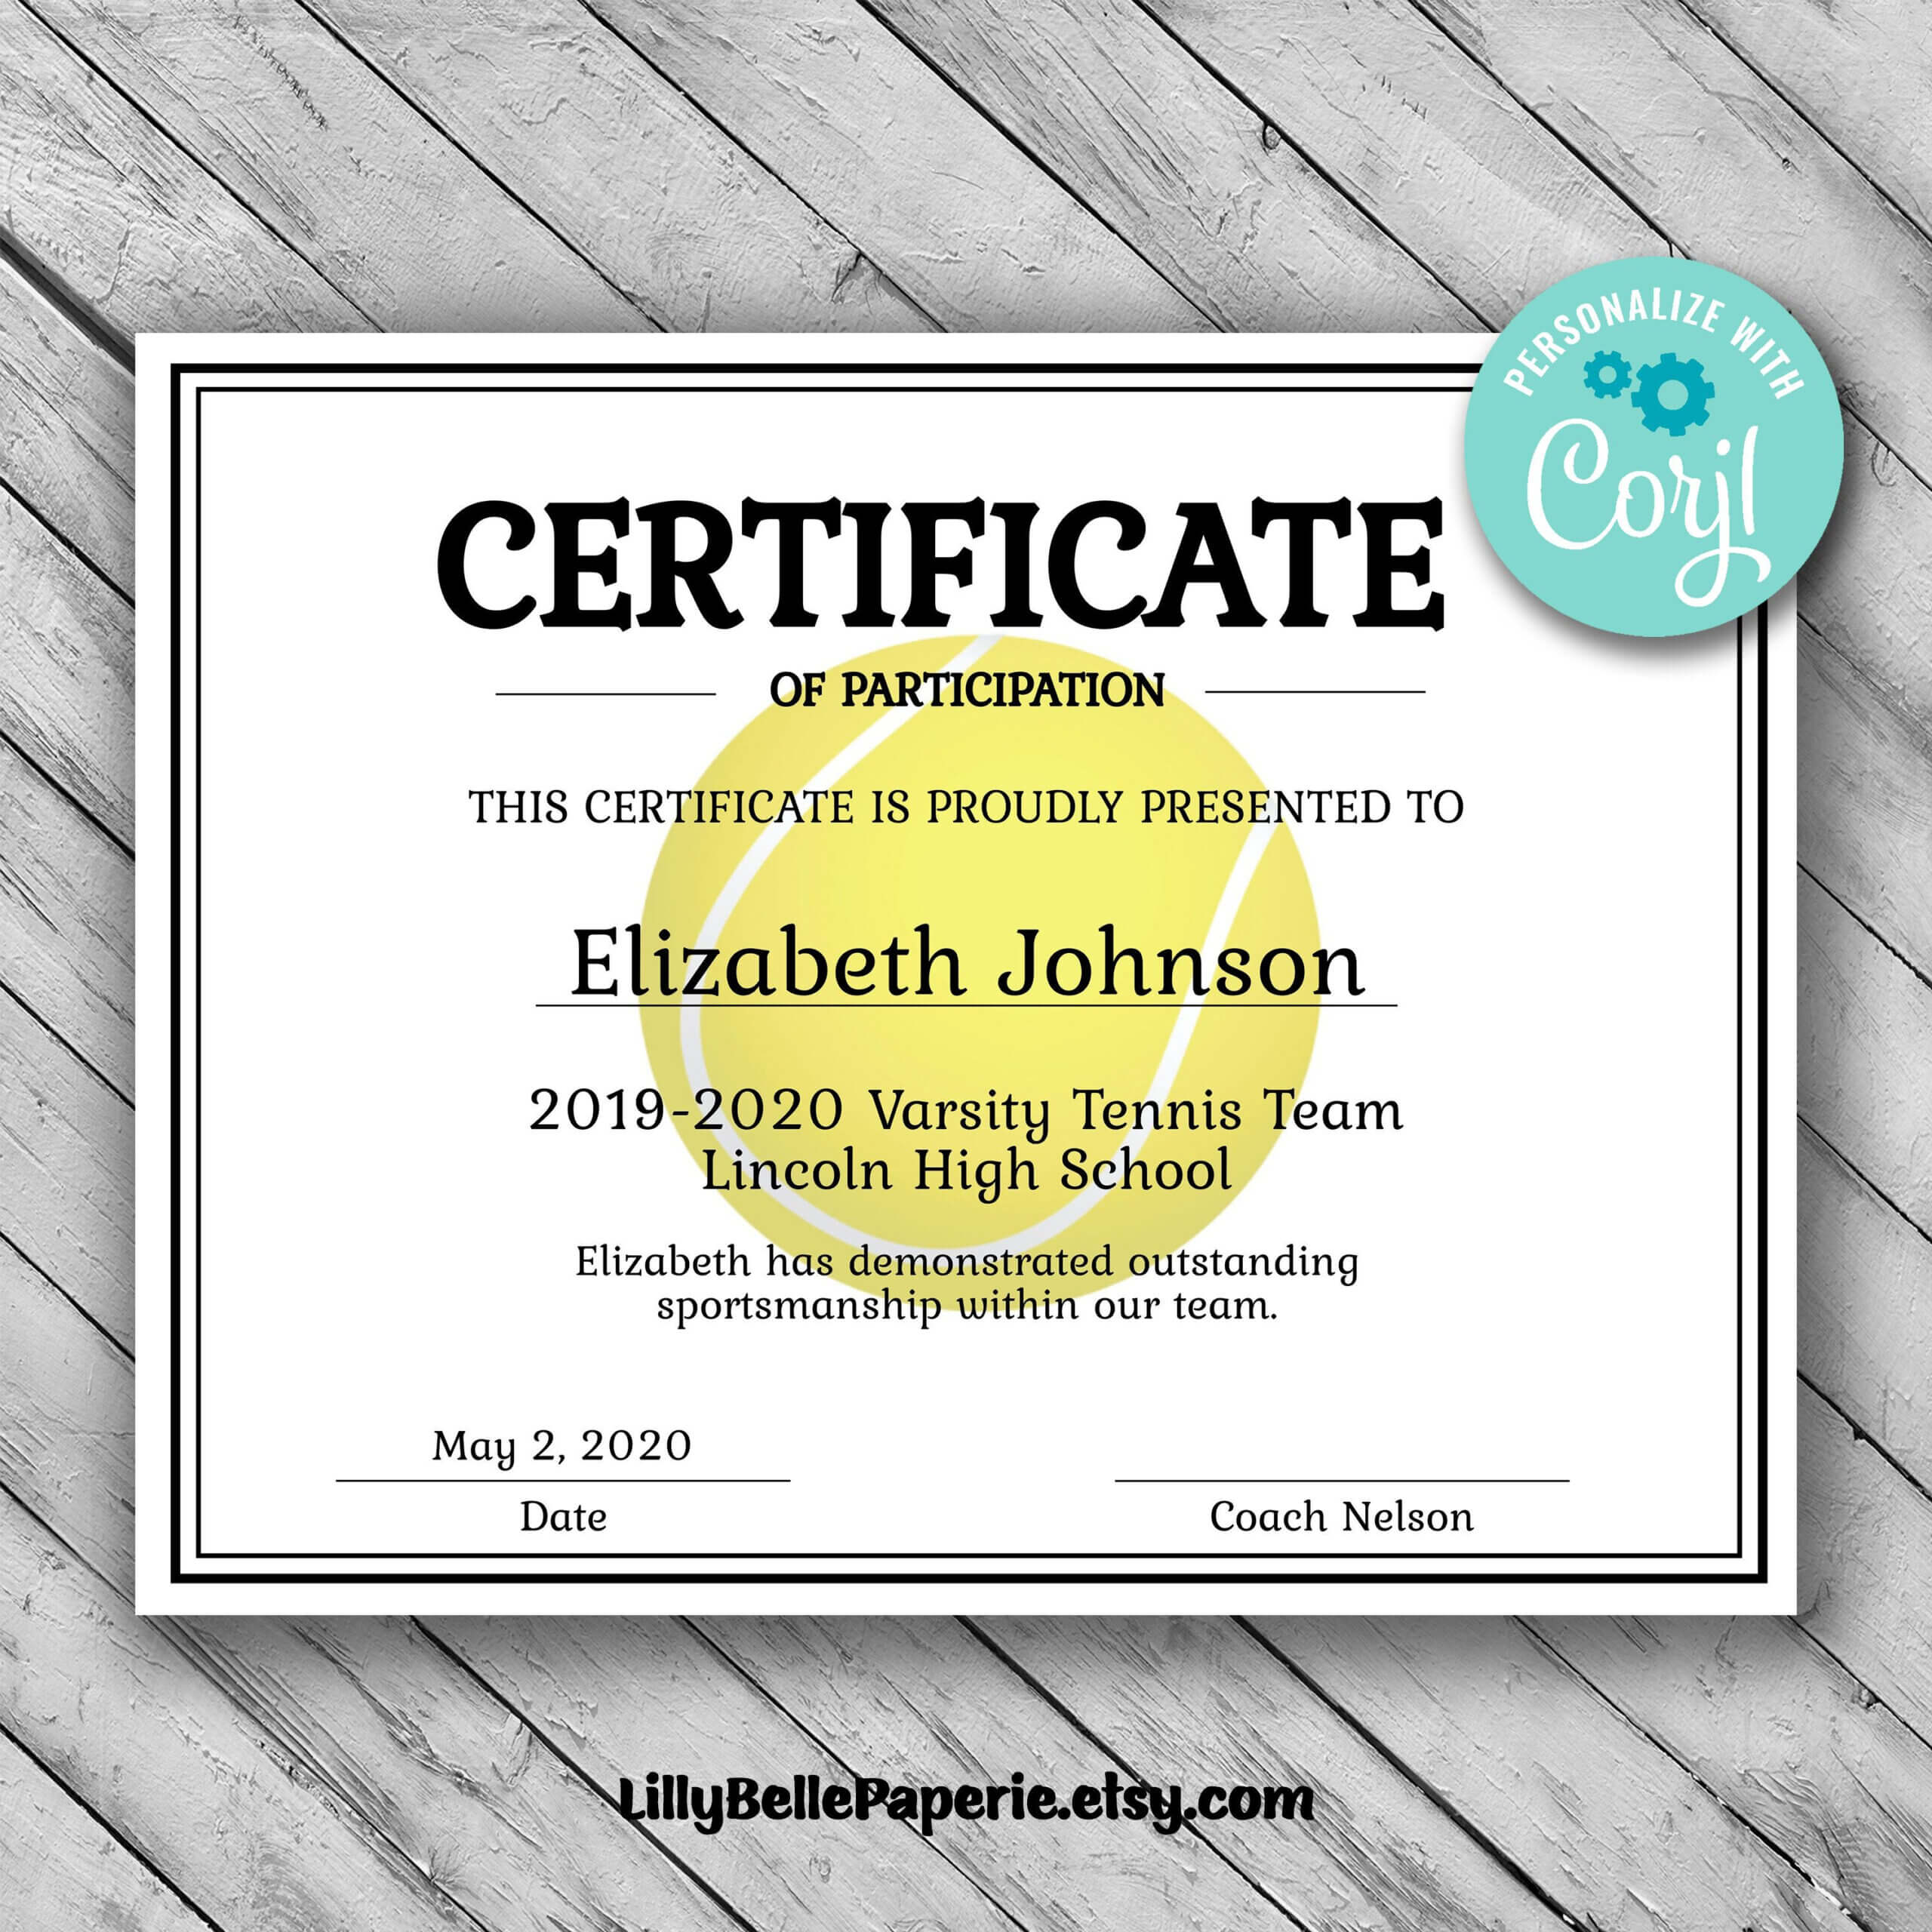 Editable Tennis Certificate Template - Printable Certificate With Regard To This Entitles The Bearer To Template Certificate